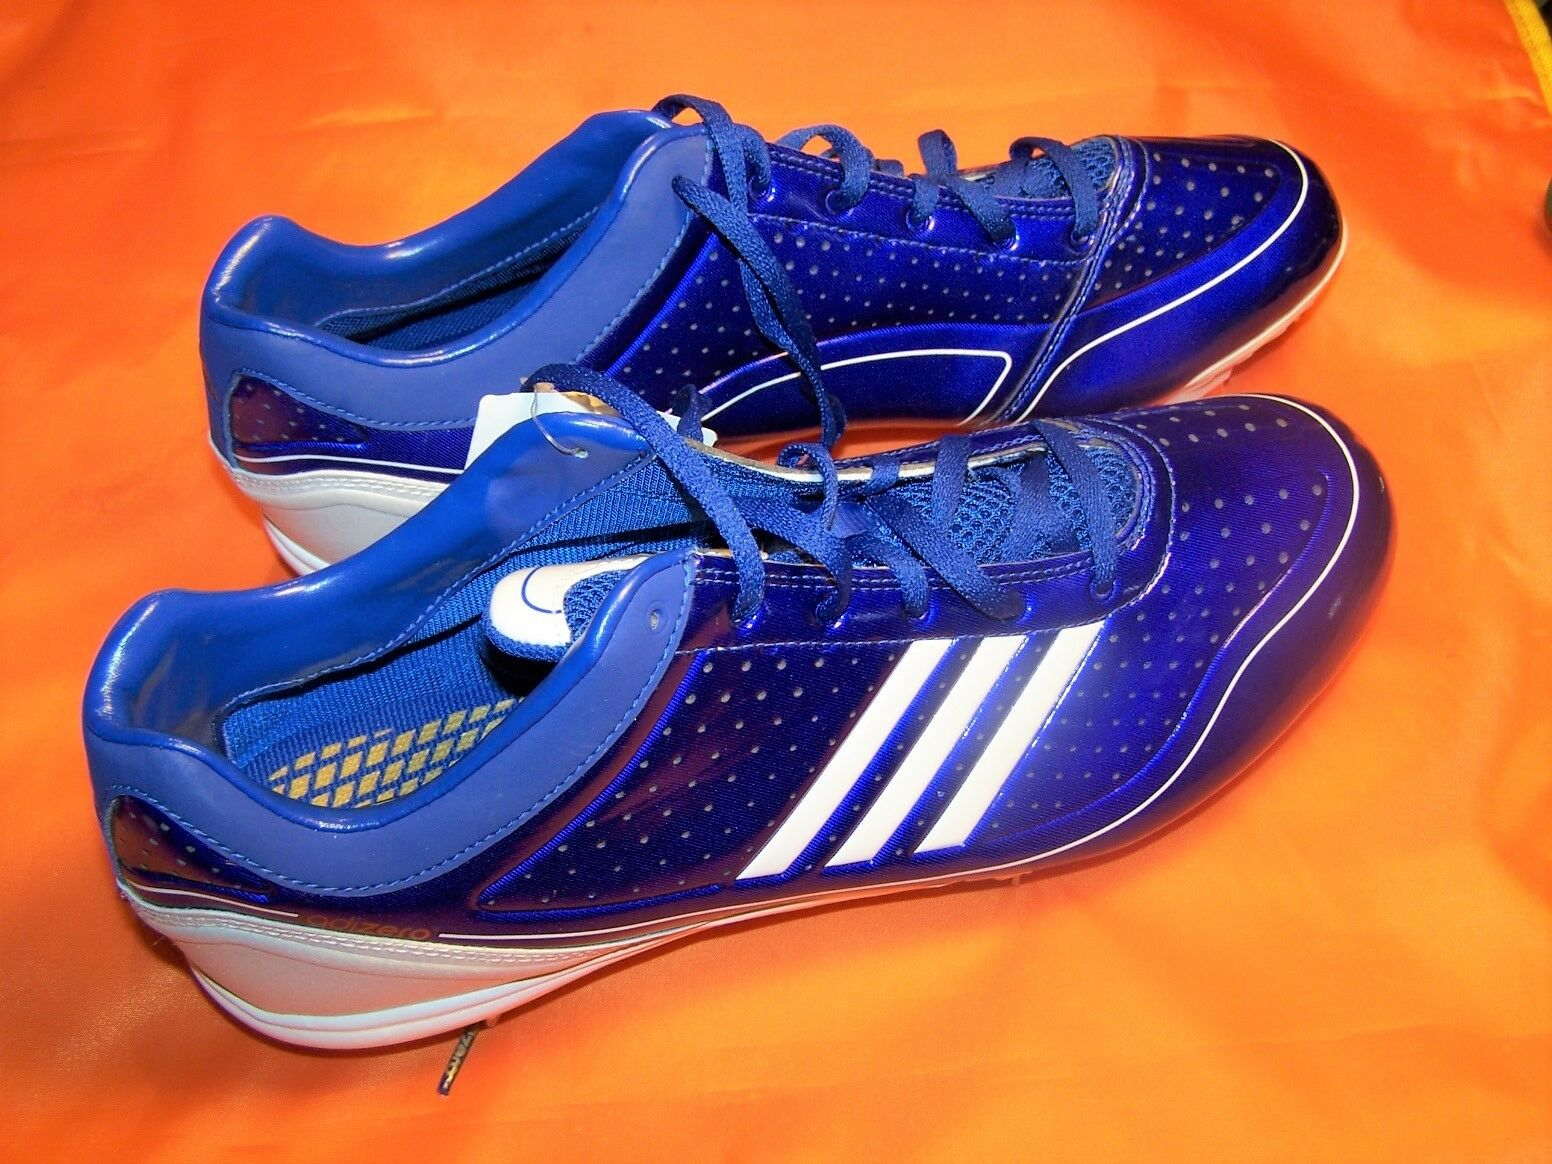 ADIDAS ADIZERO DIAMOND KING SIZE 11 1/2 METAL CLEAT BASEBALL SHOES NEW WITH TAGS best-selling model of the brand